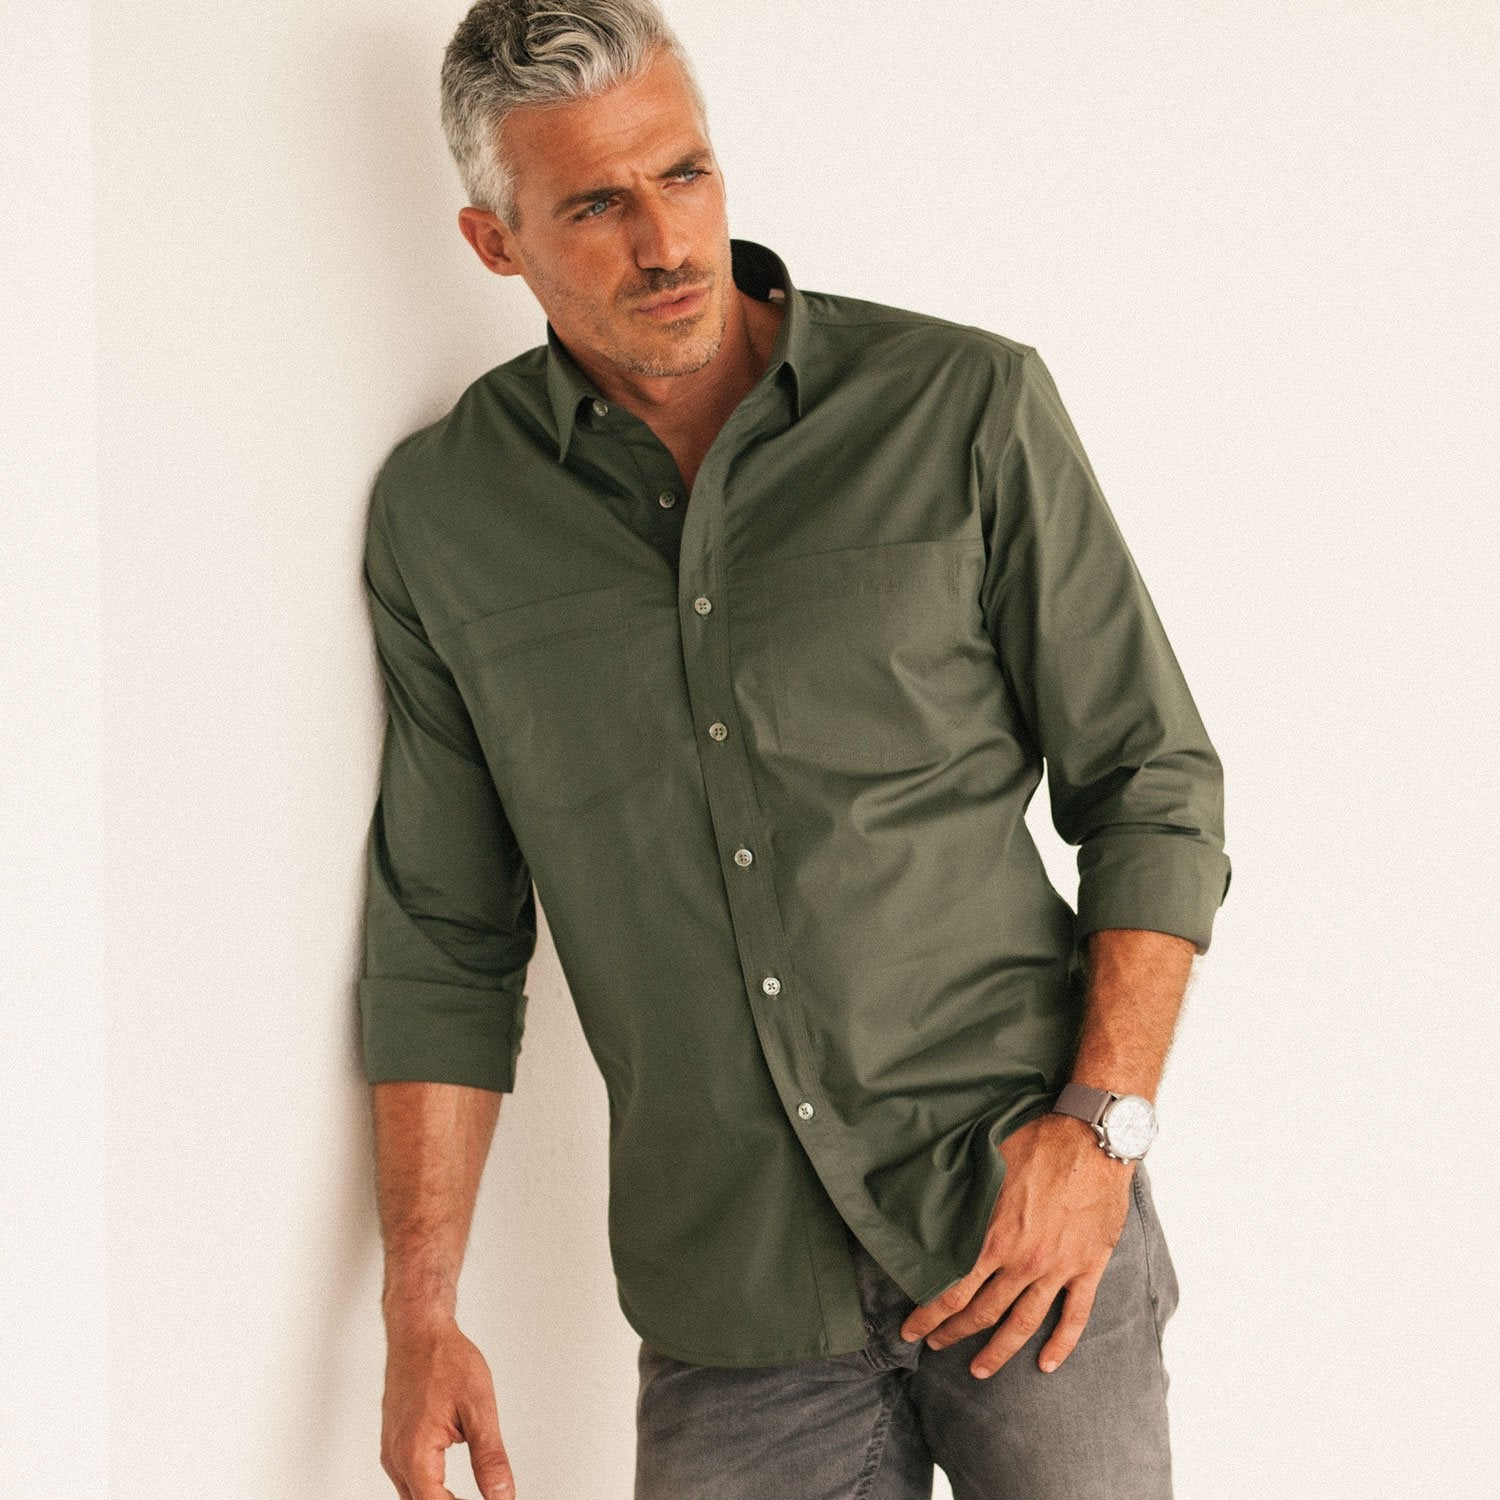 Men's Casual Purist Two Pocket Button Up Shirt in Fatigue Green